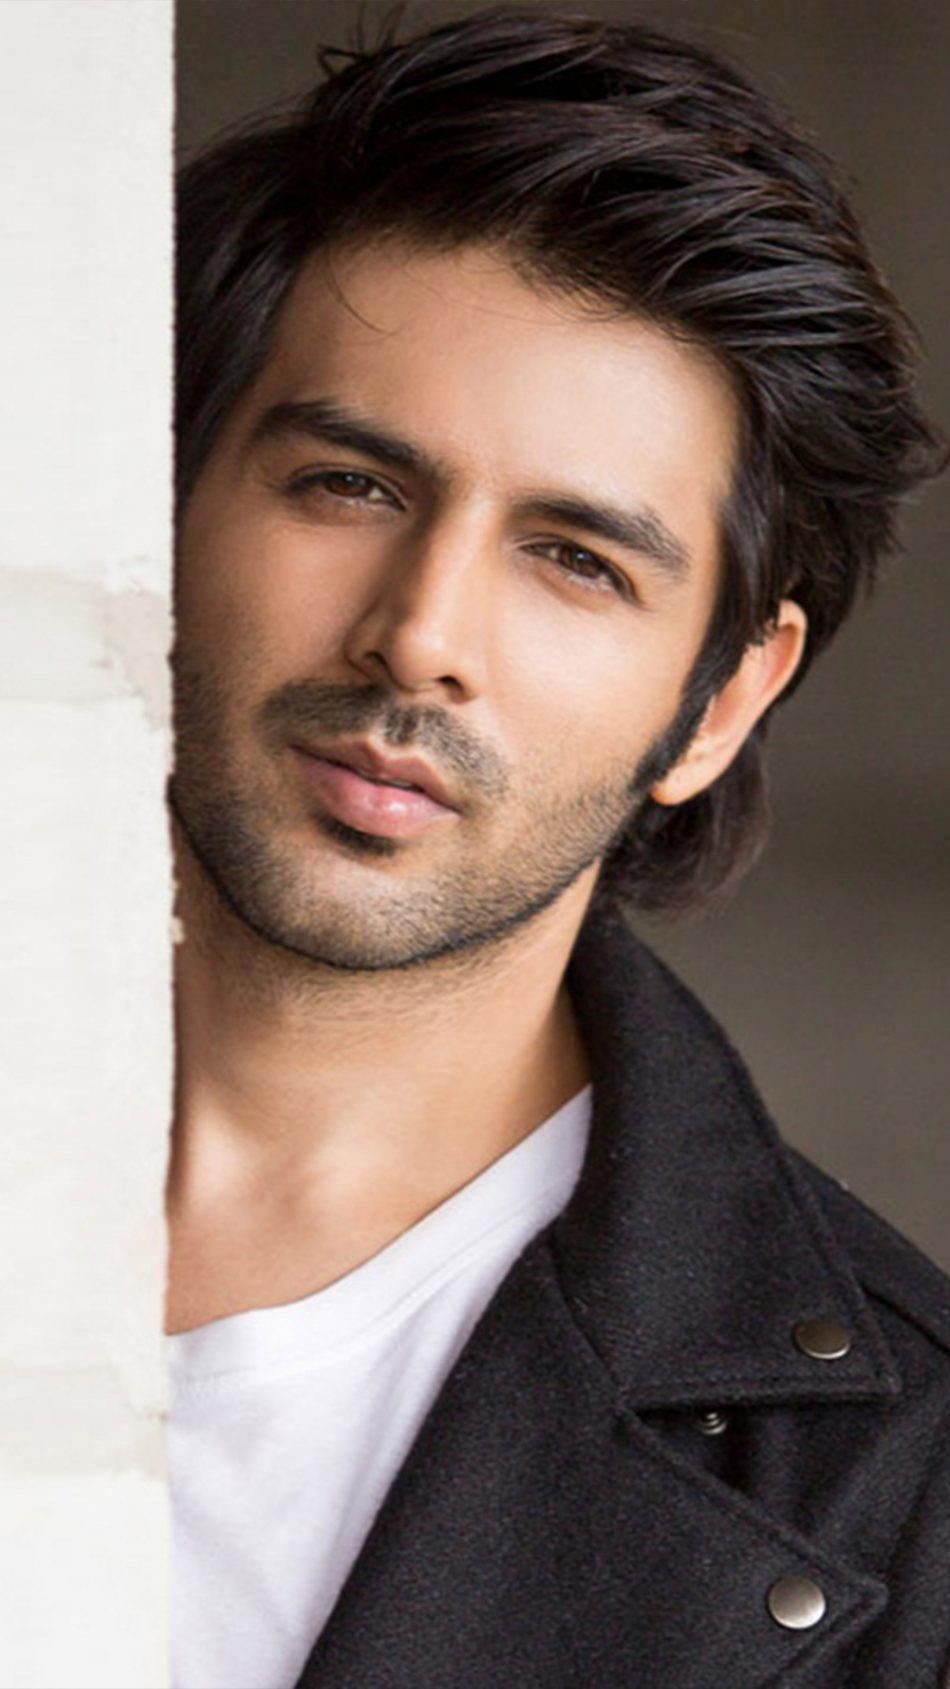 Indian Actor Kartik Aaryan 4K Ultra HD Mobile Wallpaper